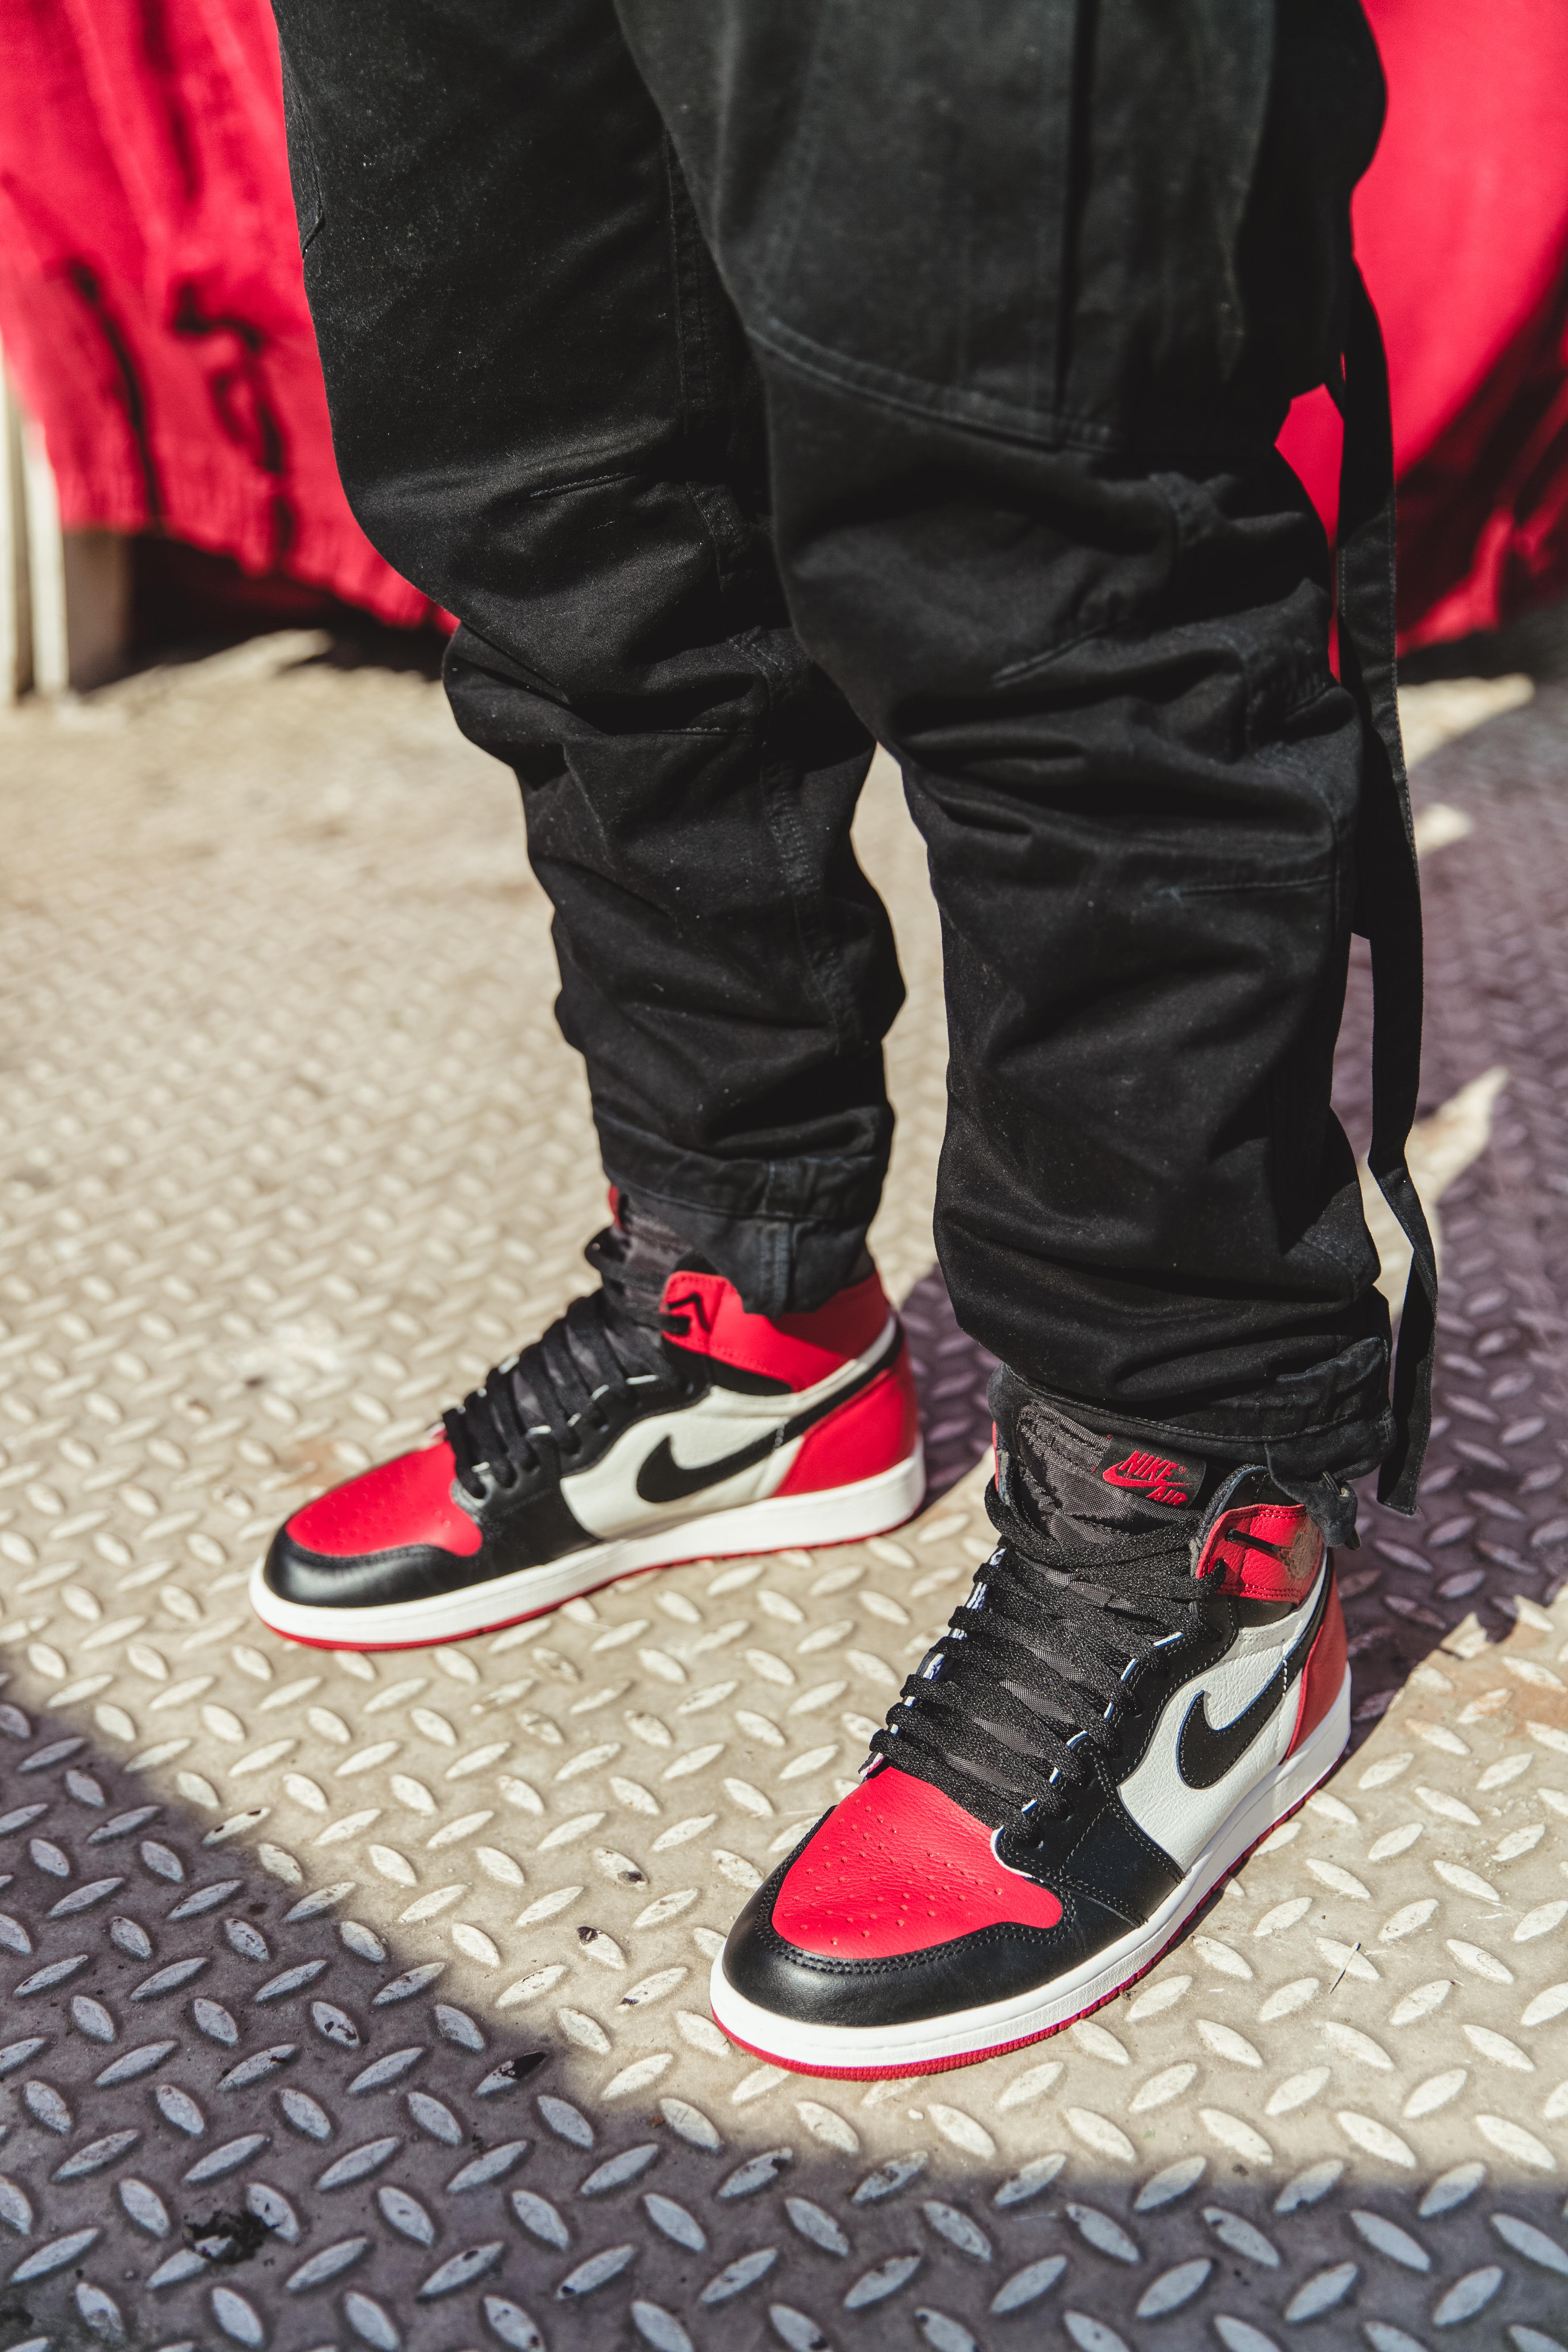 jordan 1 banned outfit